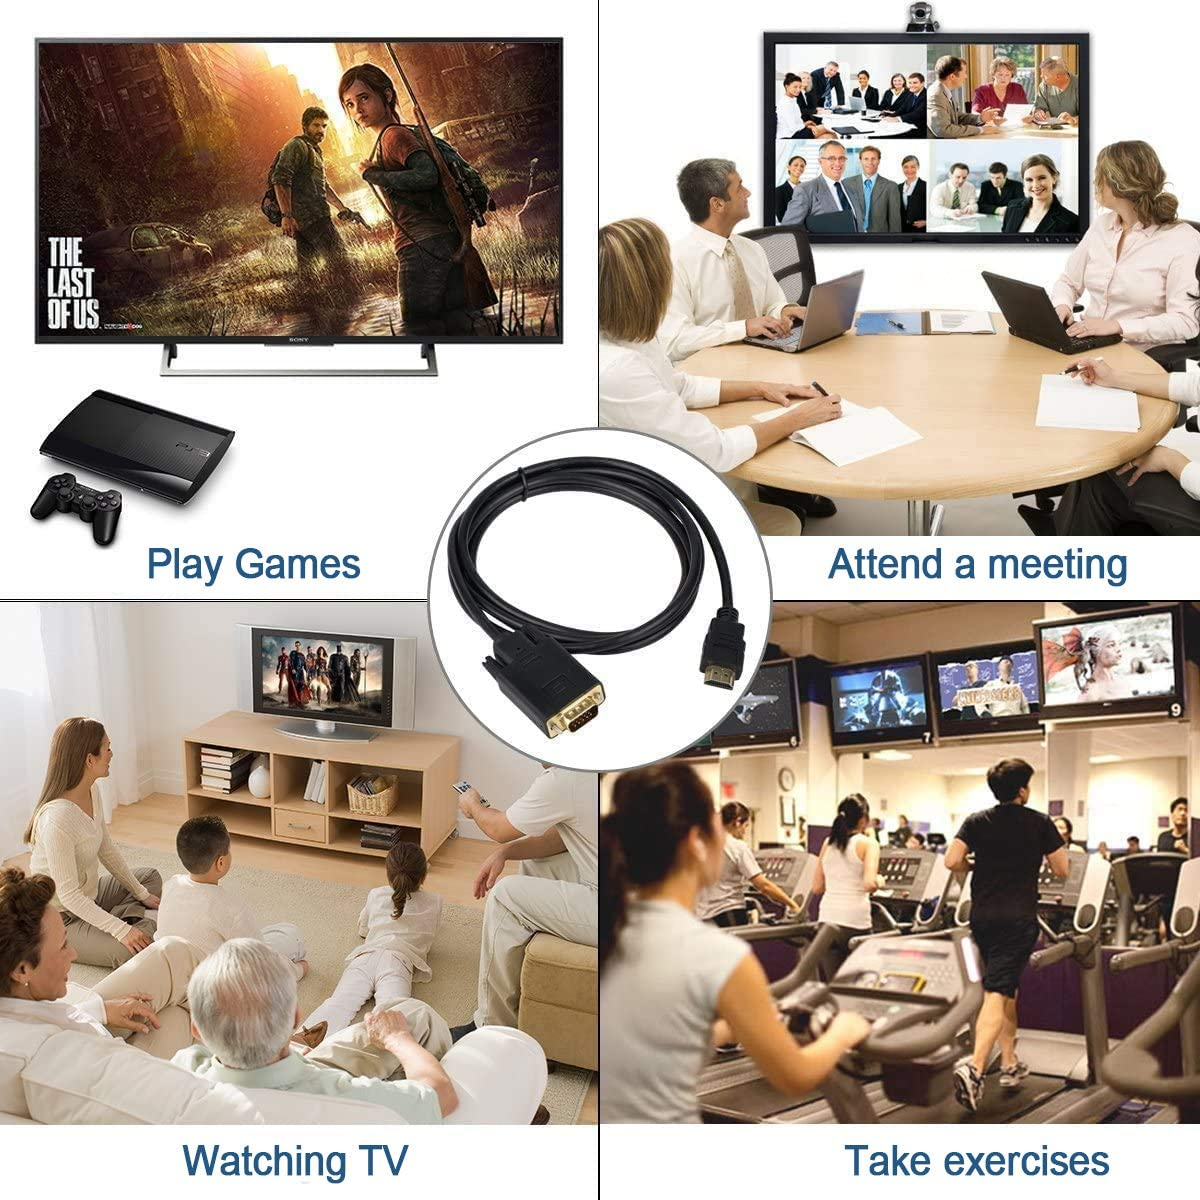 Xbox. Monitor Projector Gold-Plated 1.8M HDMI to VGA Cable Male to Male Laptop Desktop HDTV HDMI to VGA Cable Converter for Computer PC